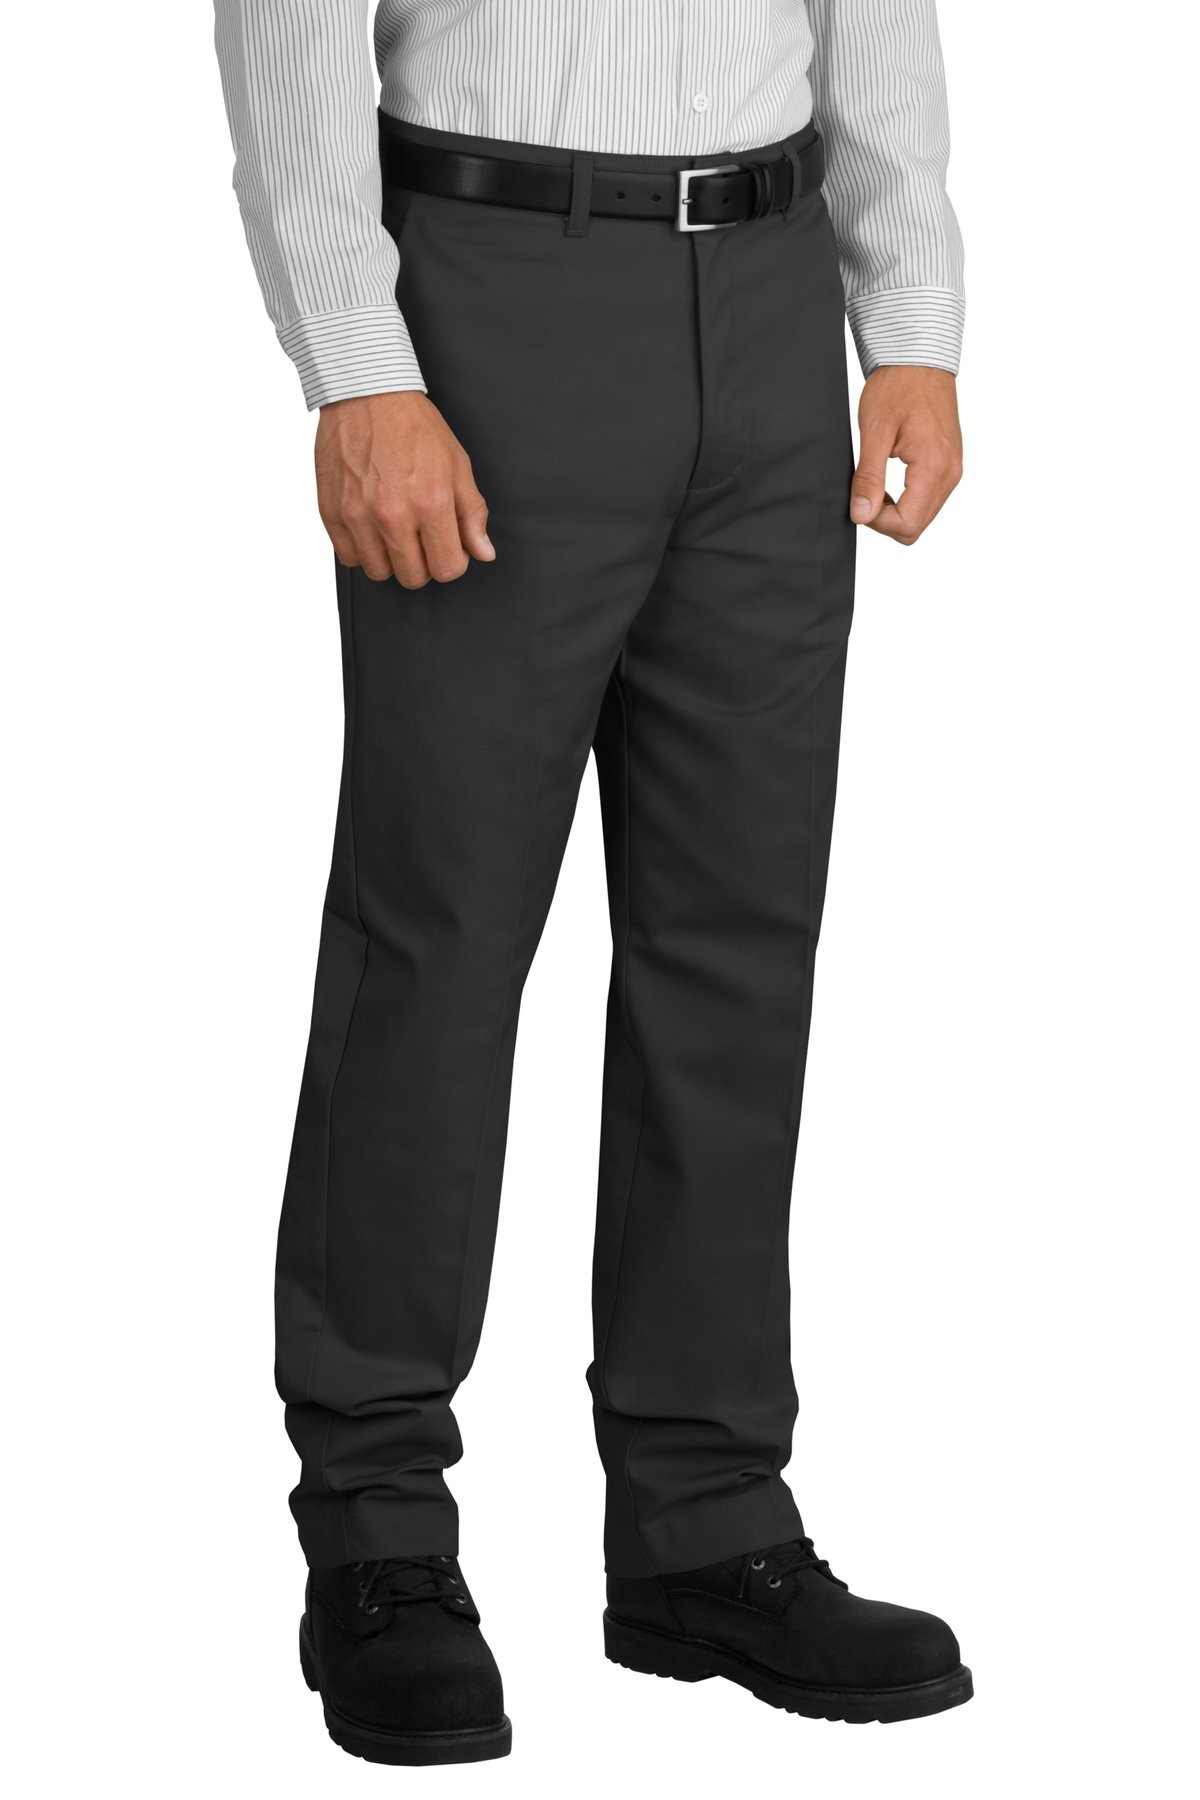 Red Kap ®  Industrial Work Pant.  PT20 - Charcoal